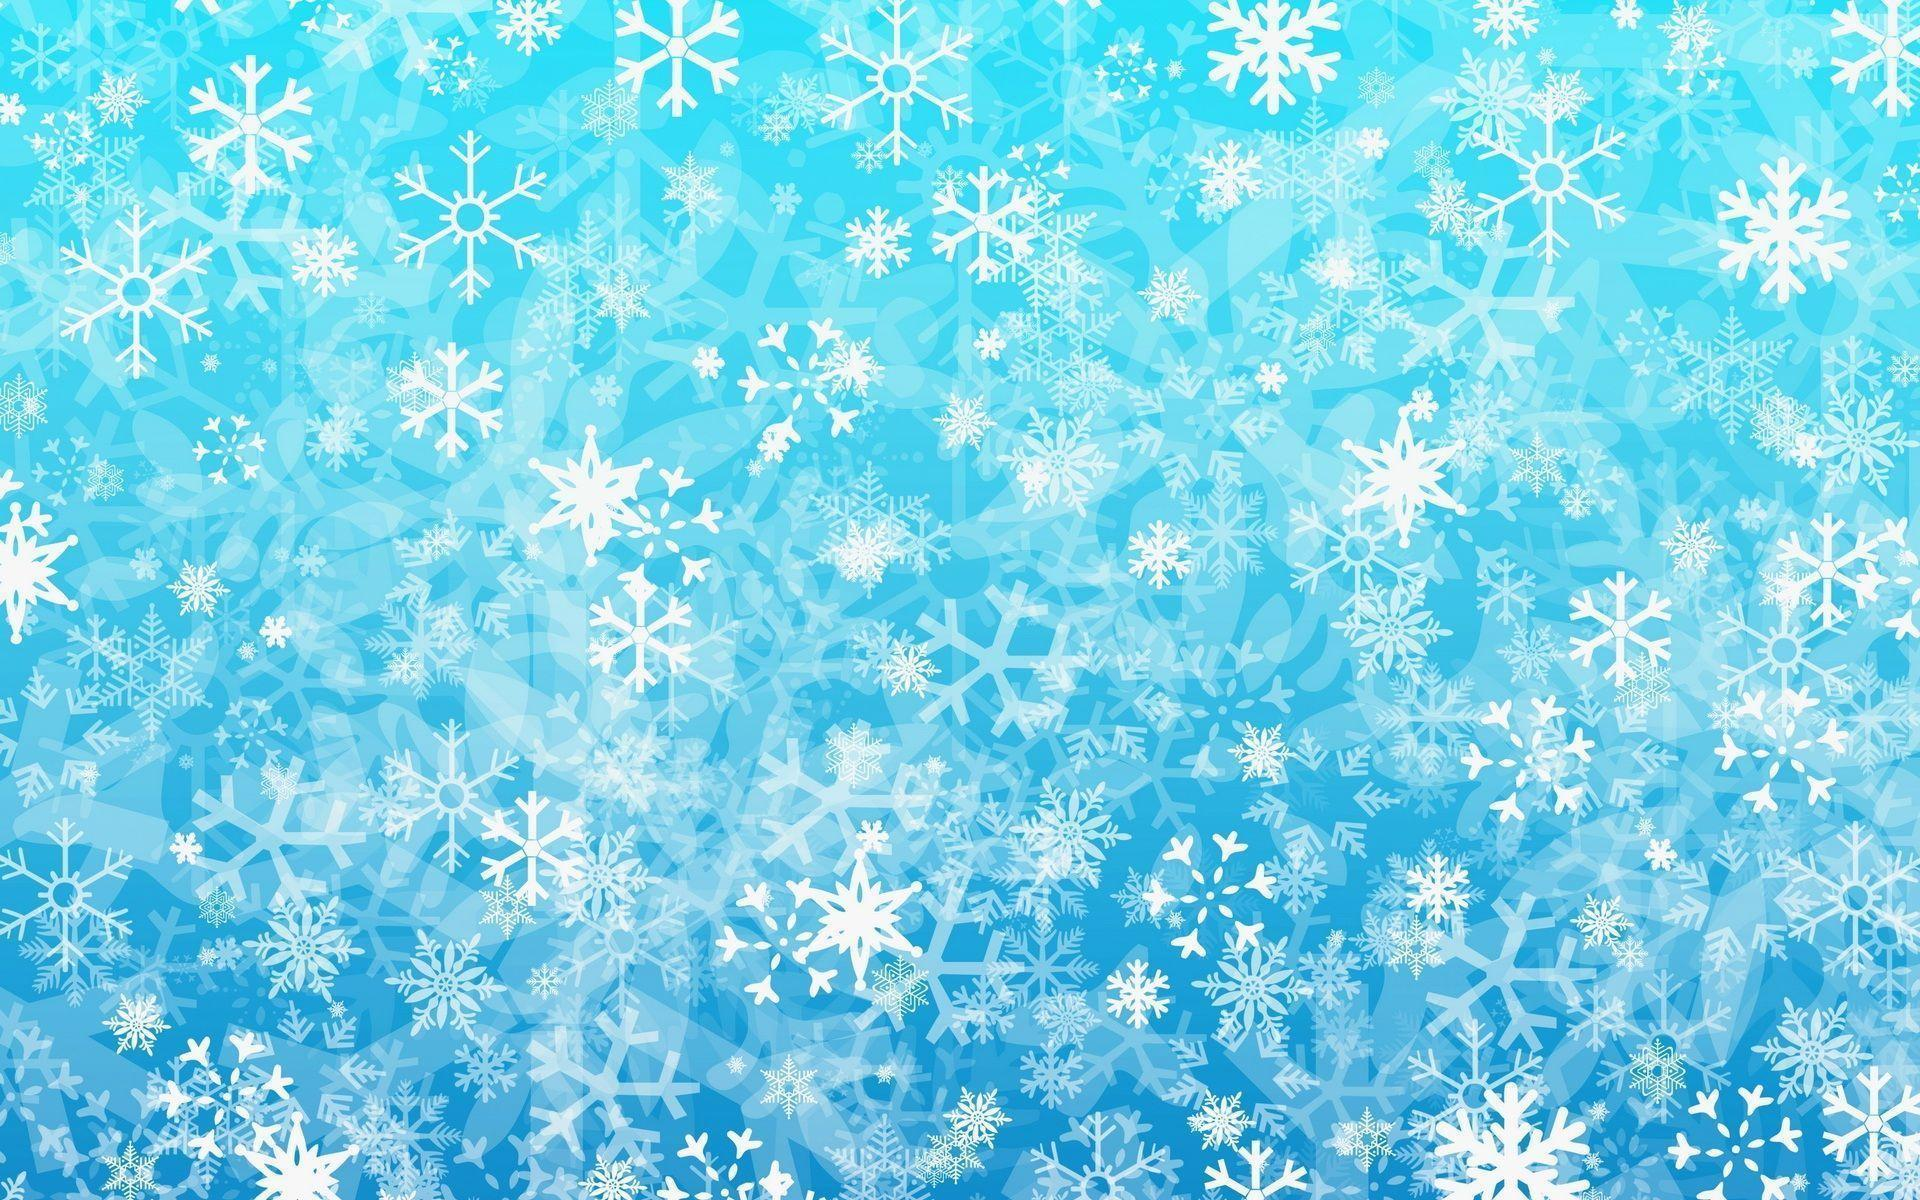 Snowflake Backgrounds For Desktop